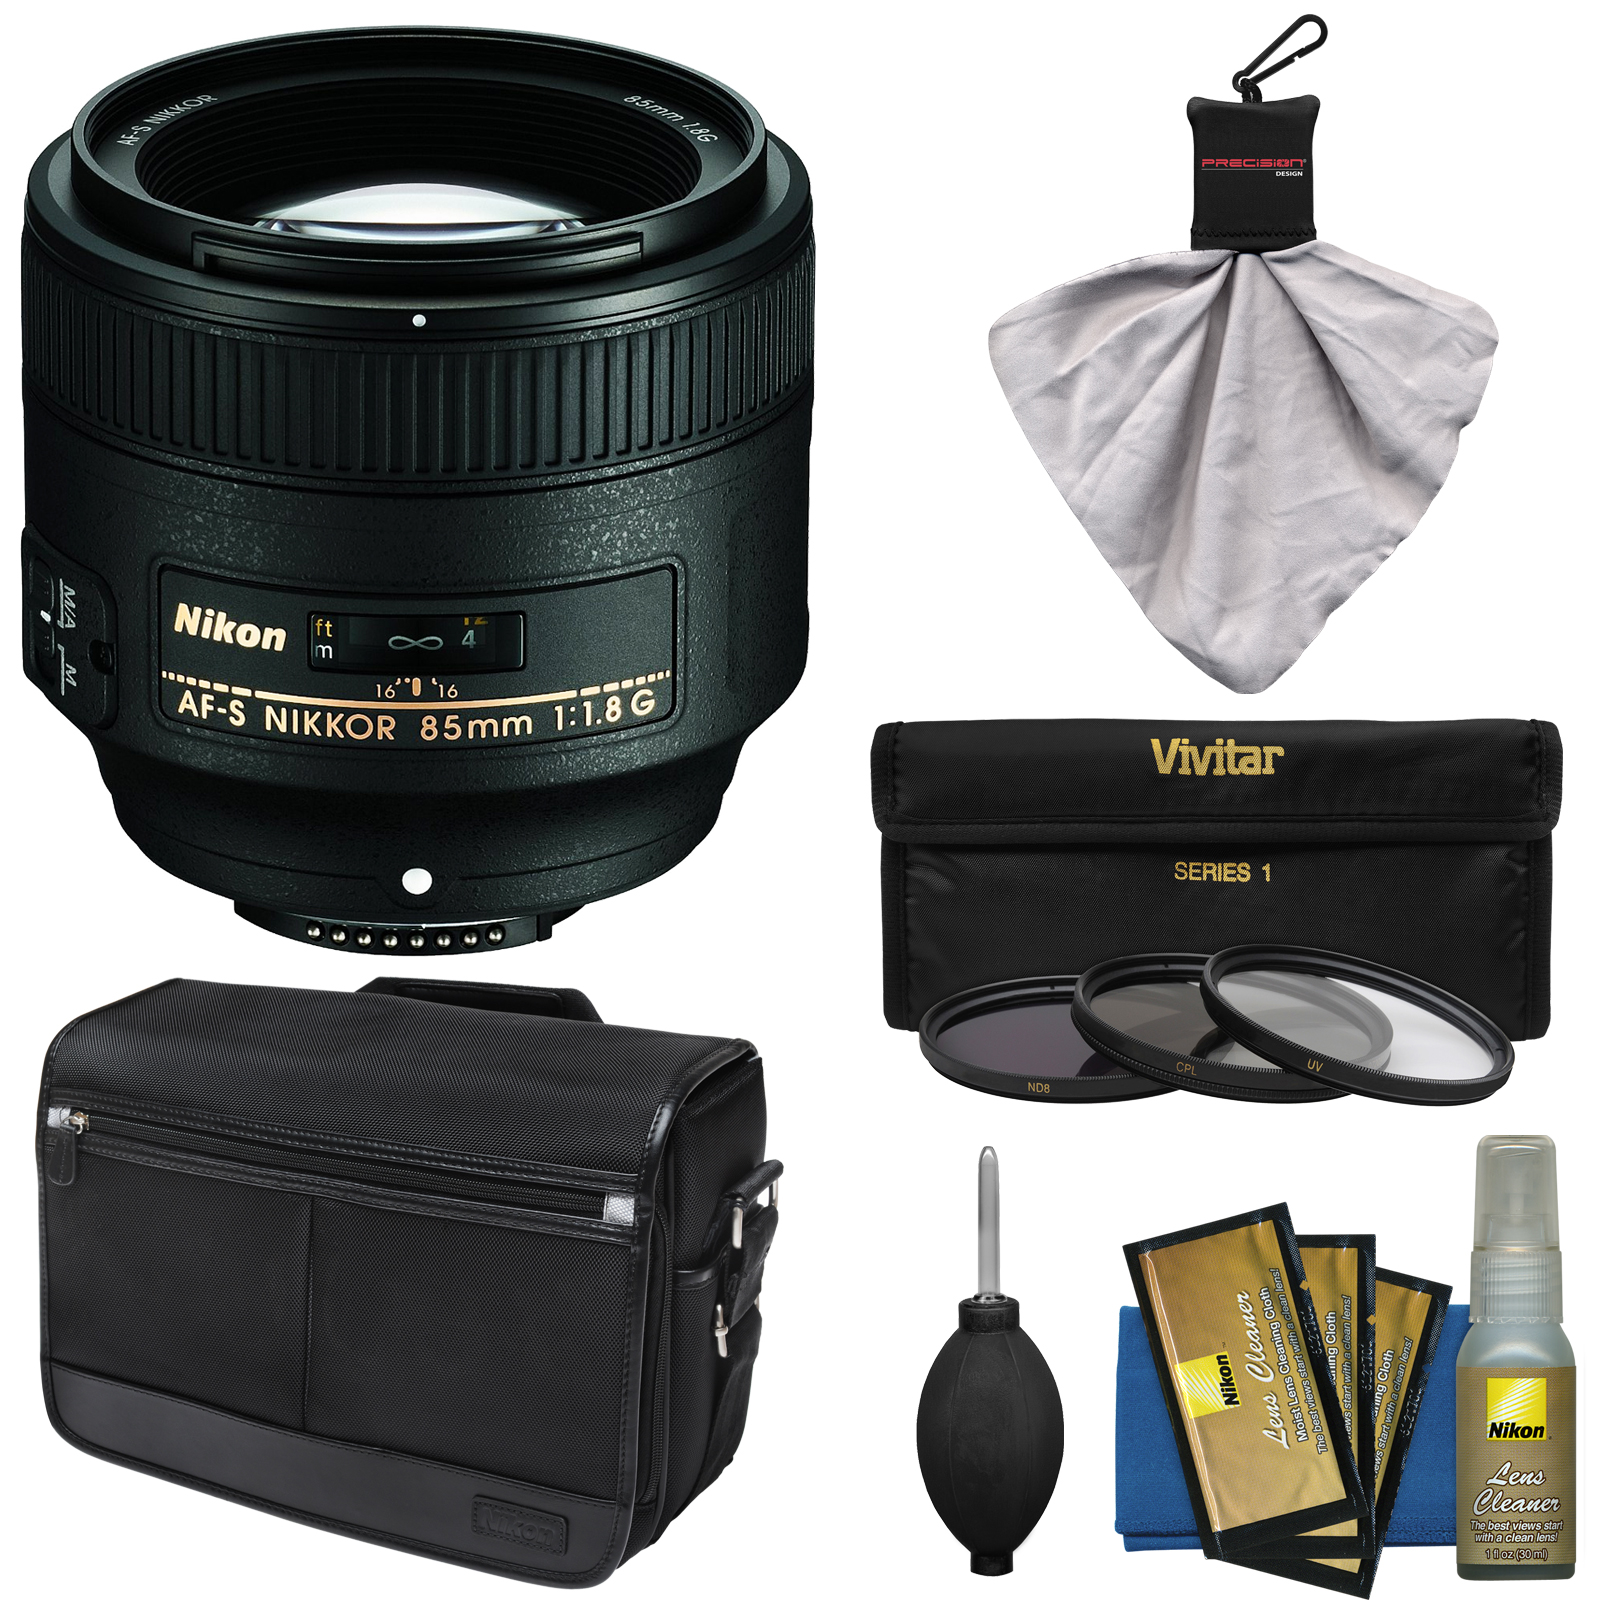 Nikon 85mm f/1.8G AF-S Nikkor Lens with Shoulder Bag + 3 UV/CPL/ND8 Filters + Kit for D3200, D3300, D5200, D5300, D7000, D7100, D610, D800, D810, D4s DSLR Cameras